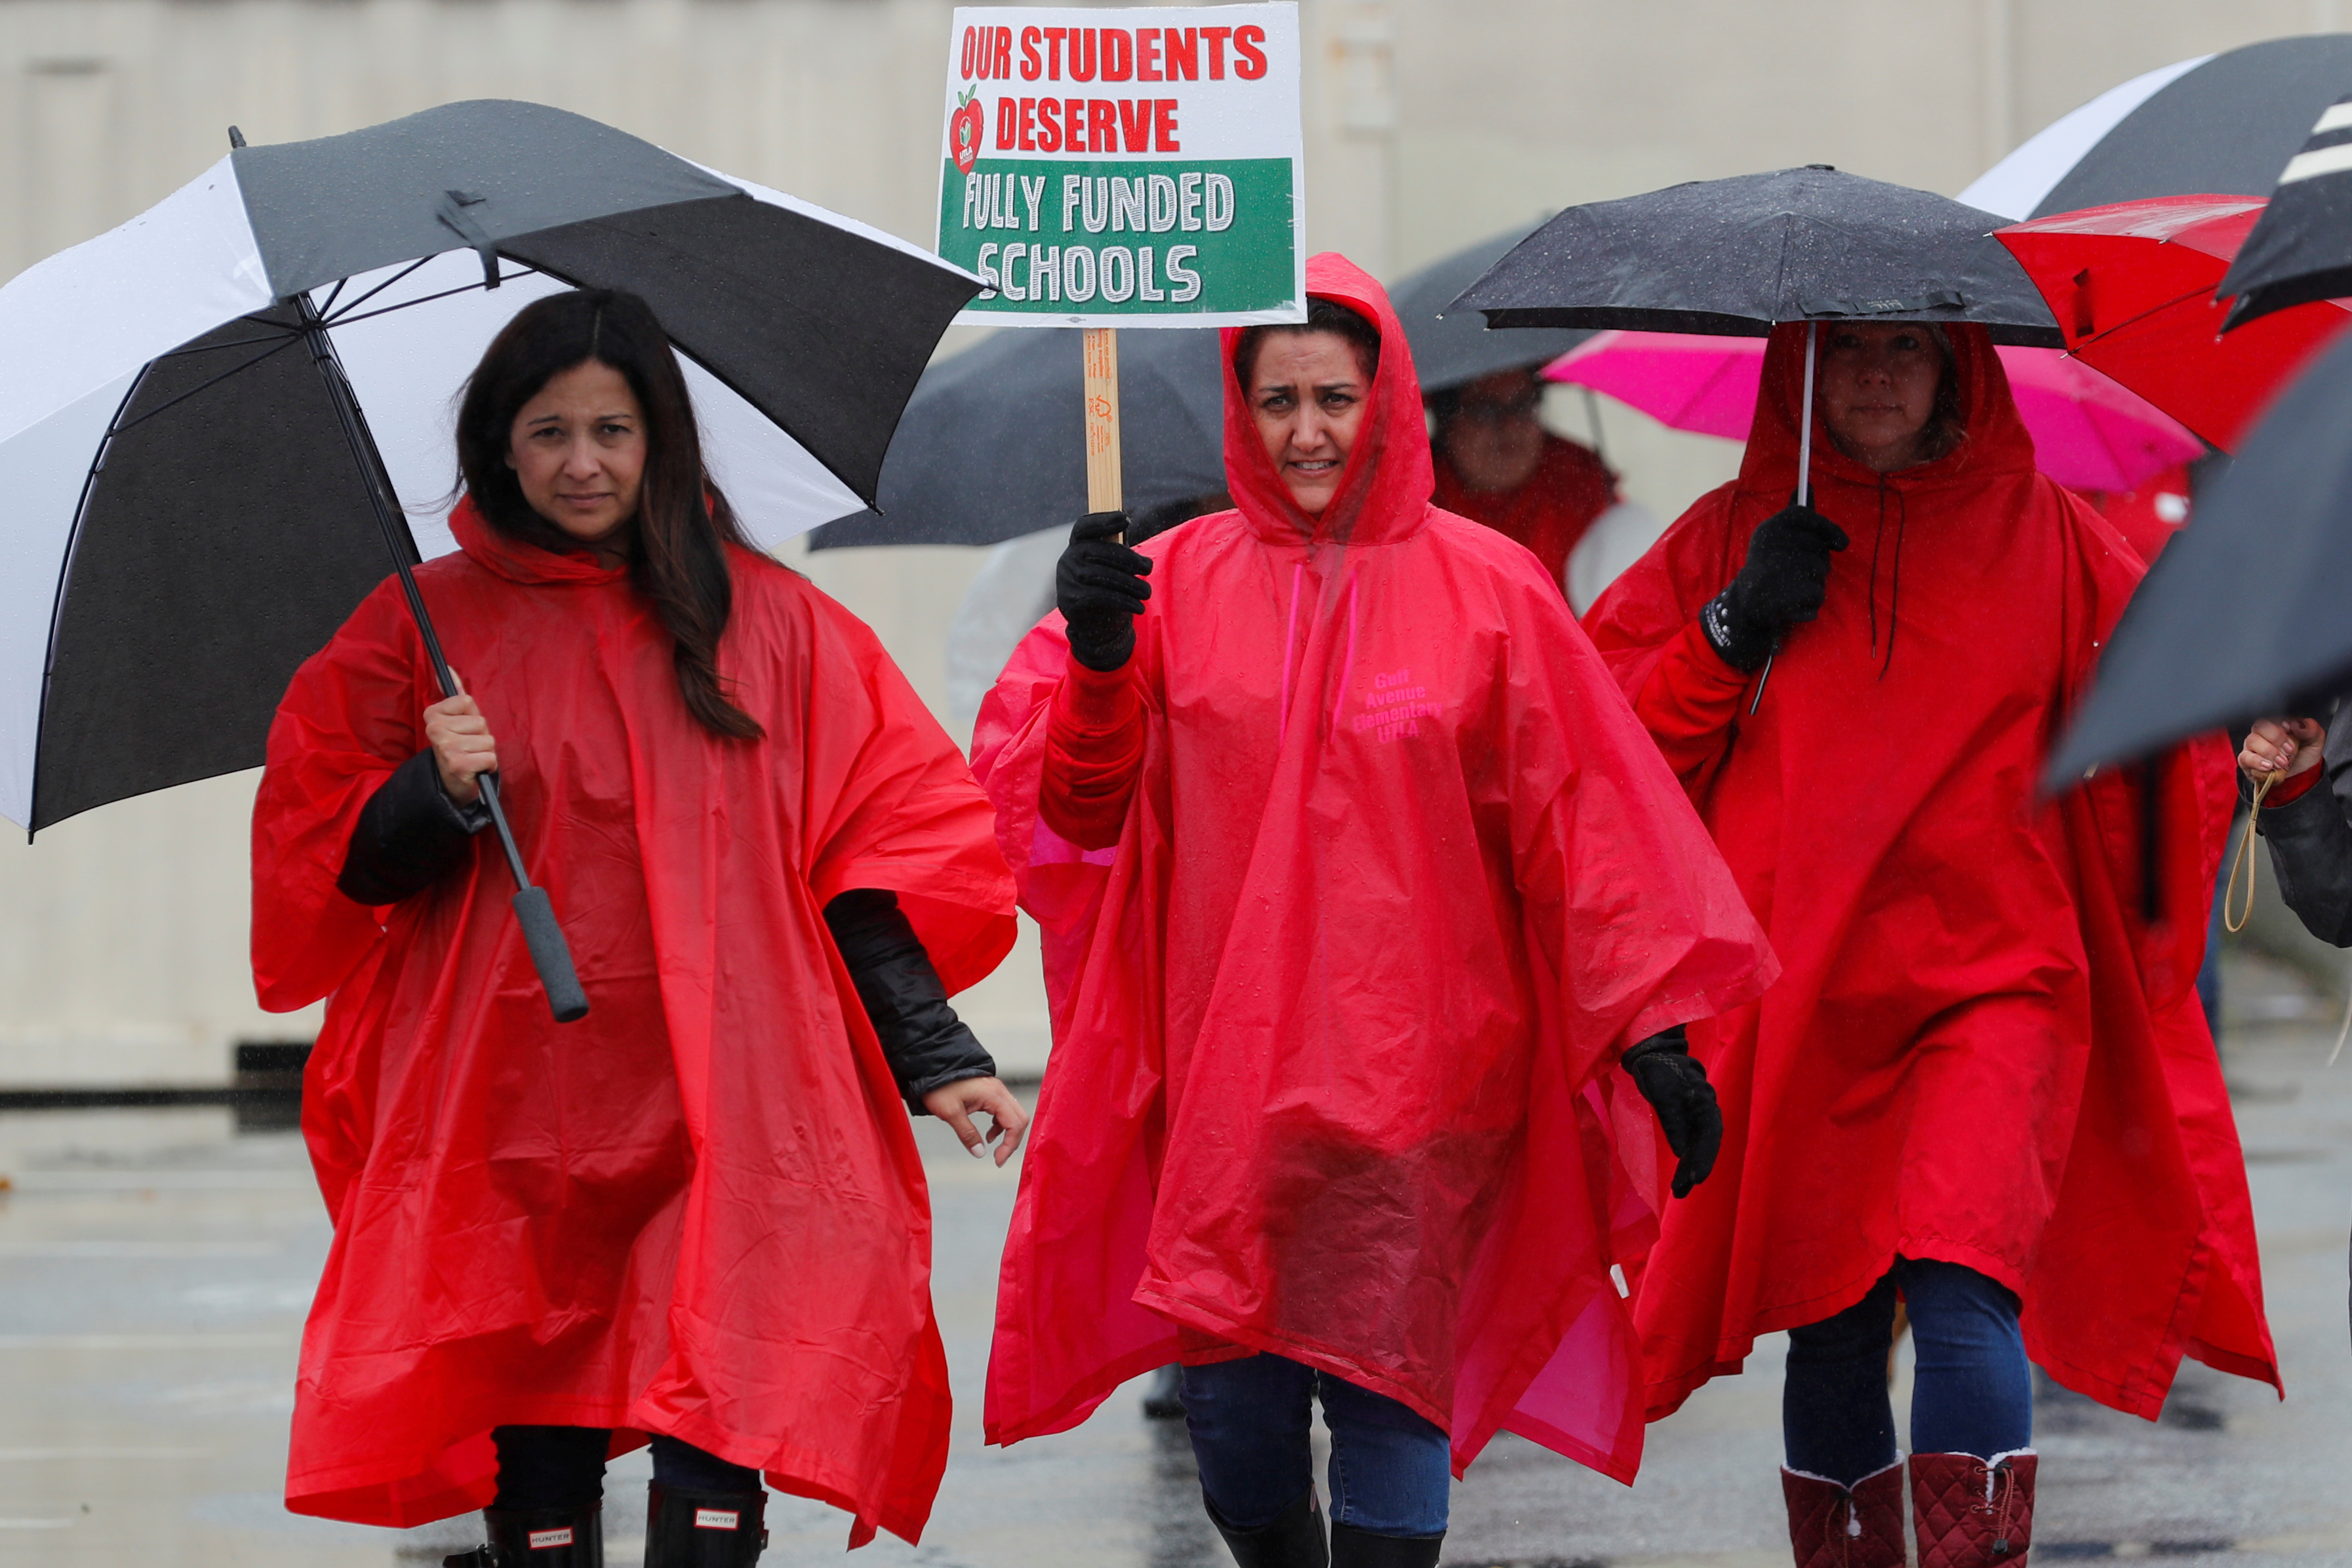 Back to school: Los Angeles teachers return to work after six-day strike